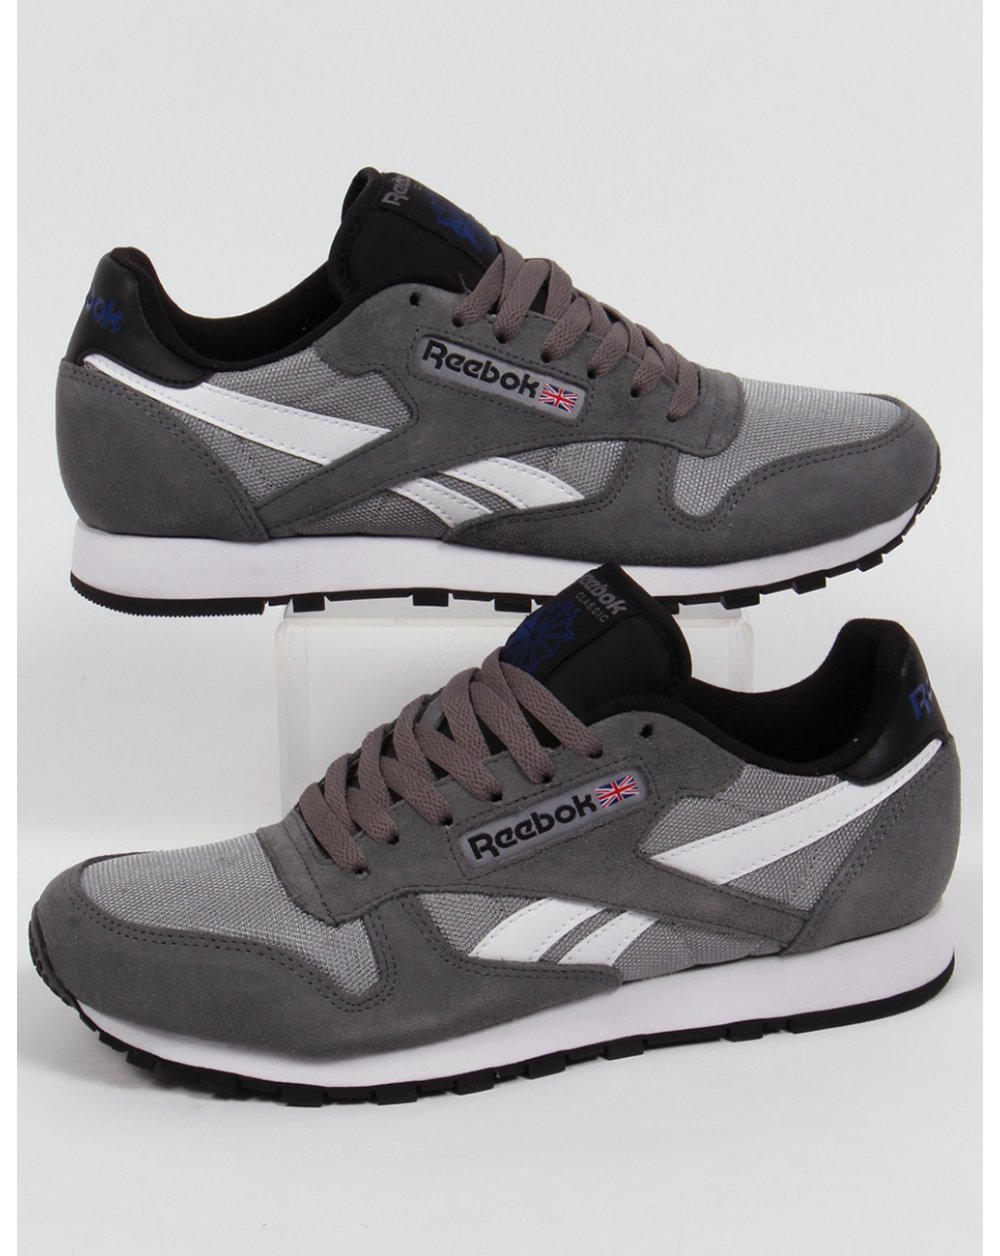 8ab5ab6a81 Reebok Reebok Classic Sport Clean Trainers Shark Grey white